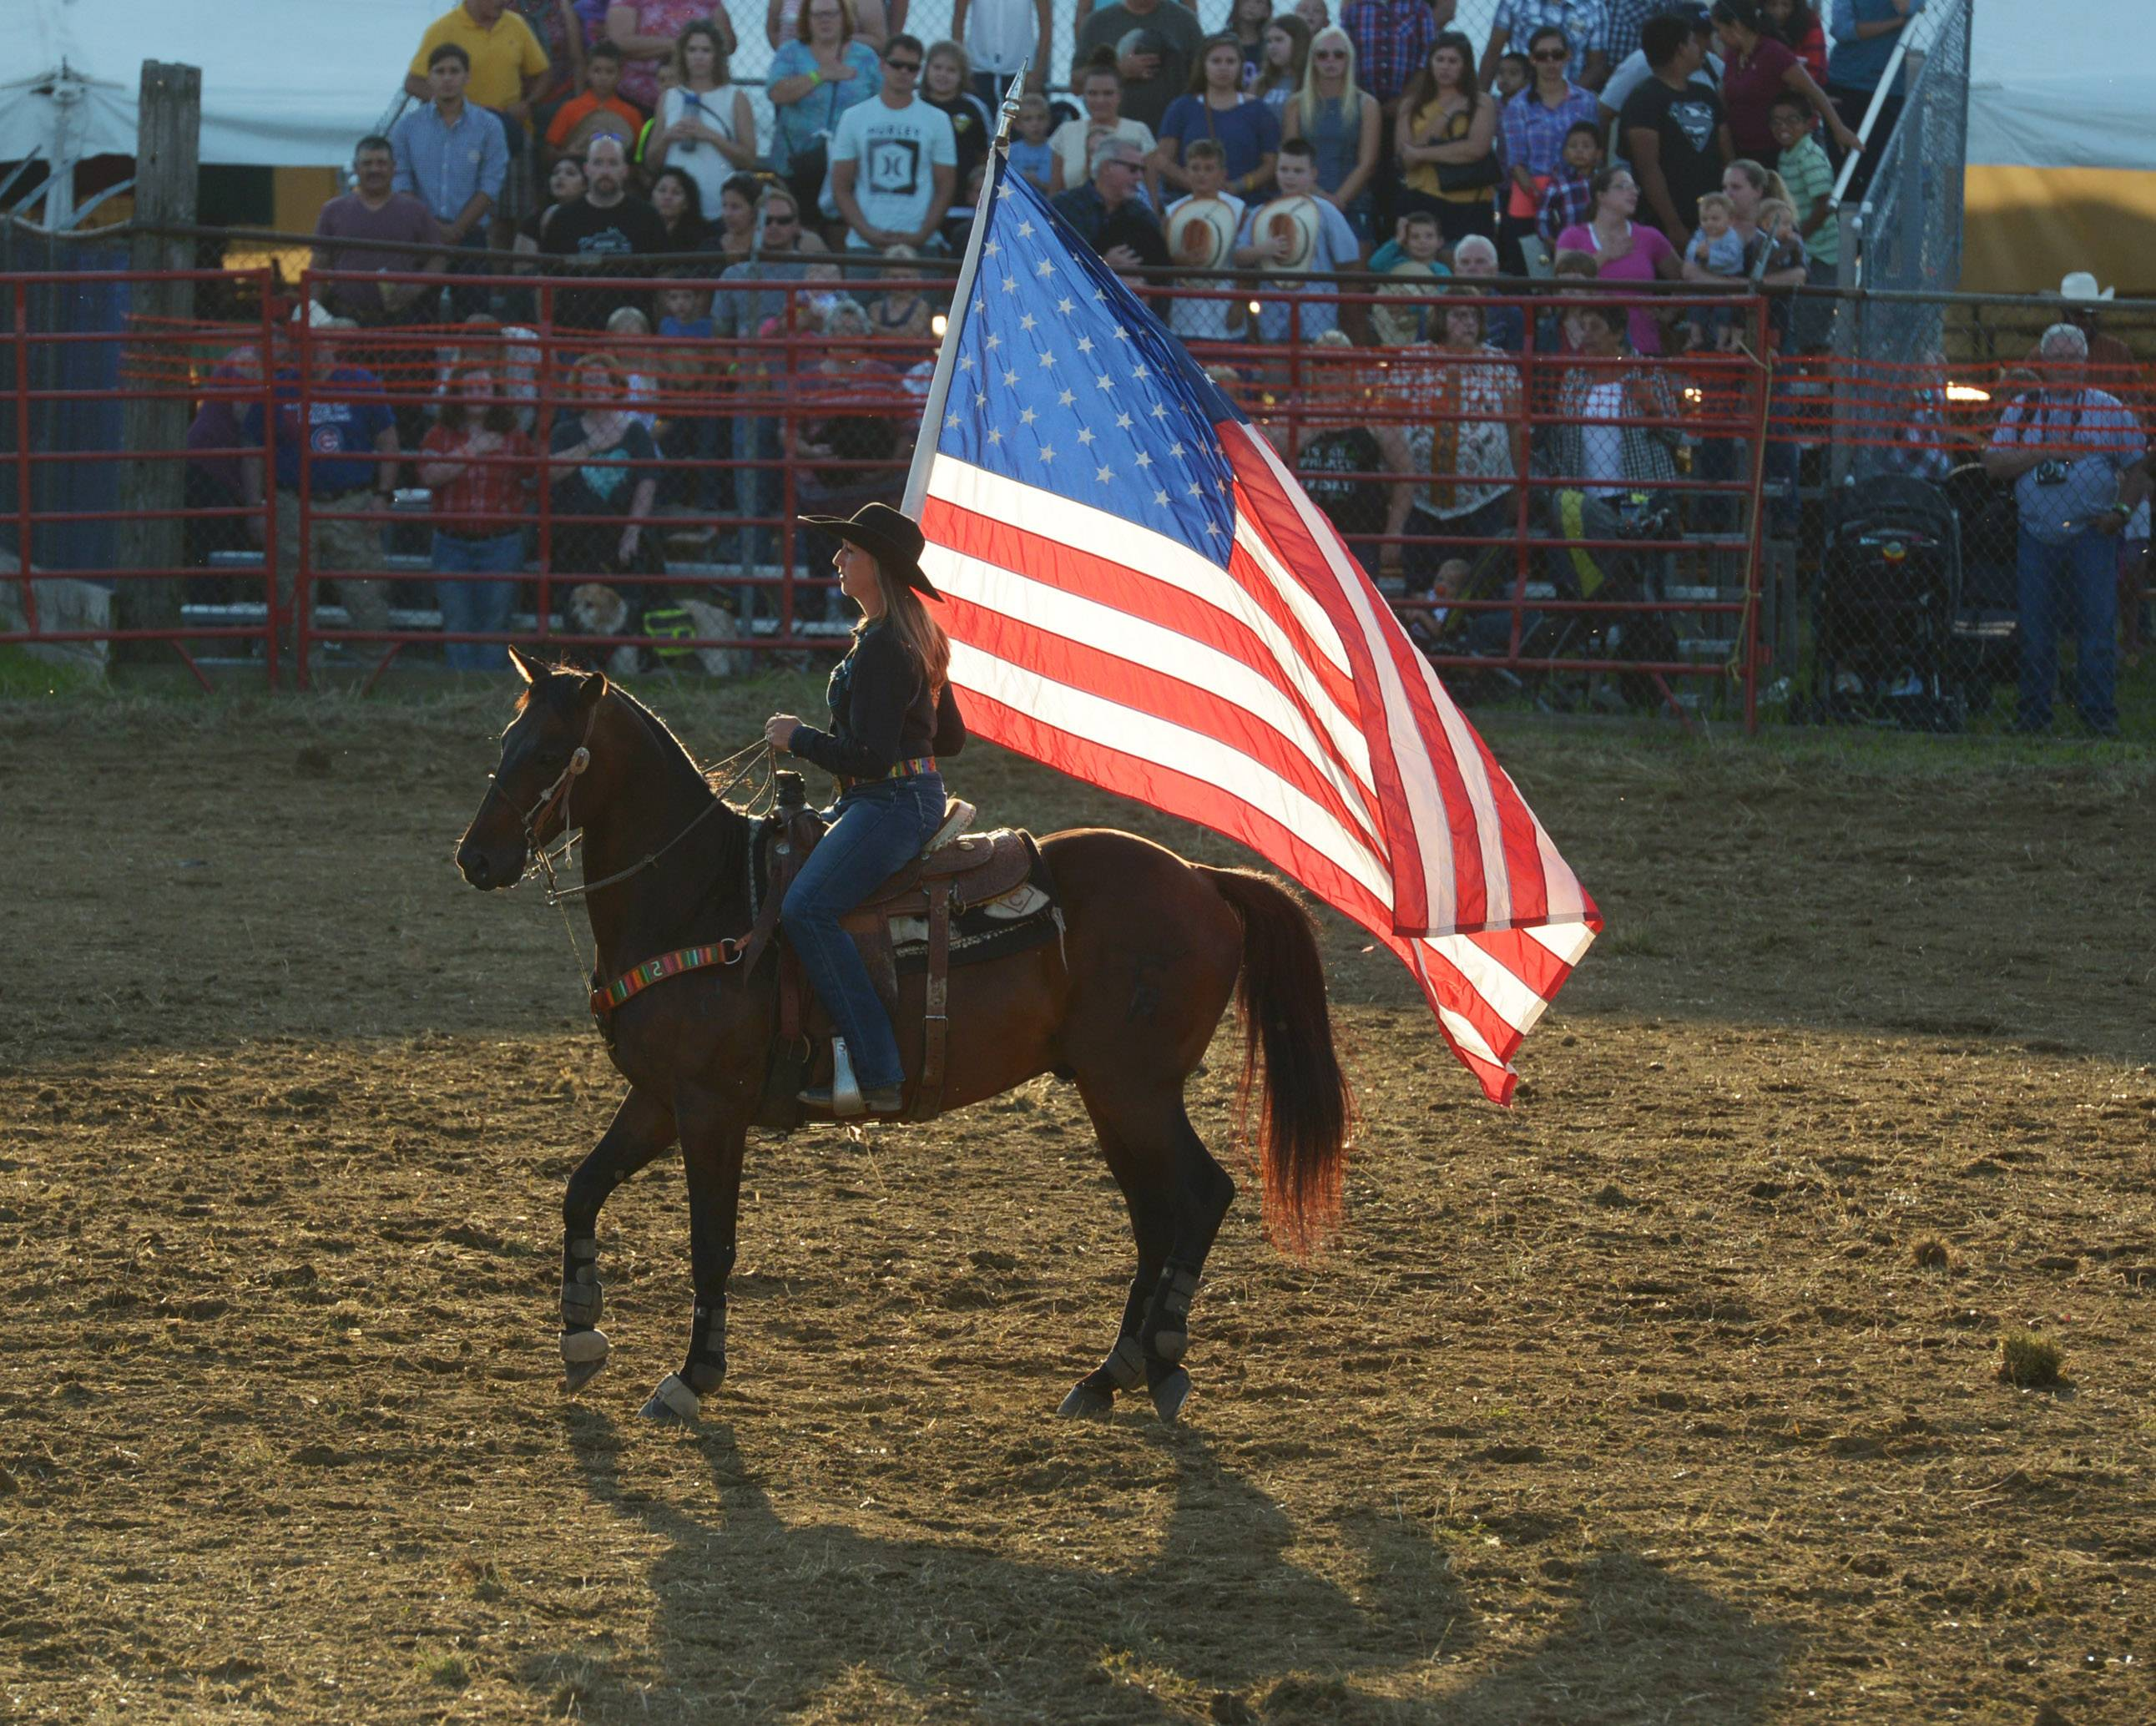 The 55th annual IPRA Championship Rodeo comes to the Golden Oaks Equestrian Center in Wauconda July 14 and 15. Gates open at 5 p.m. Saturday and noon Sunday.